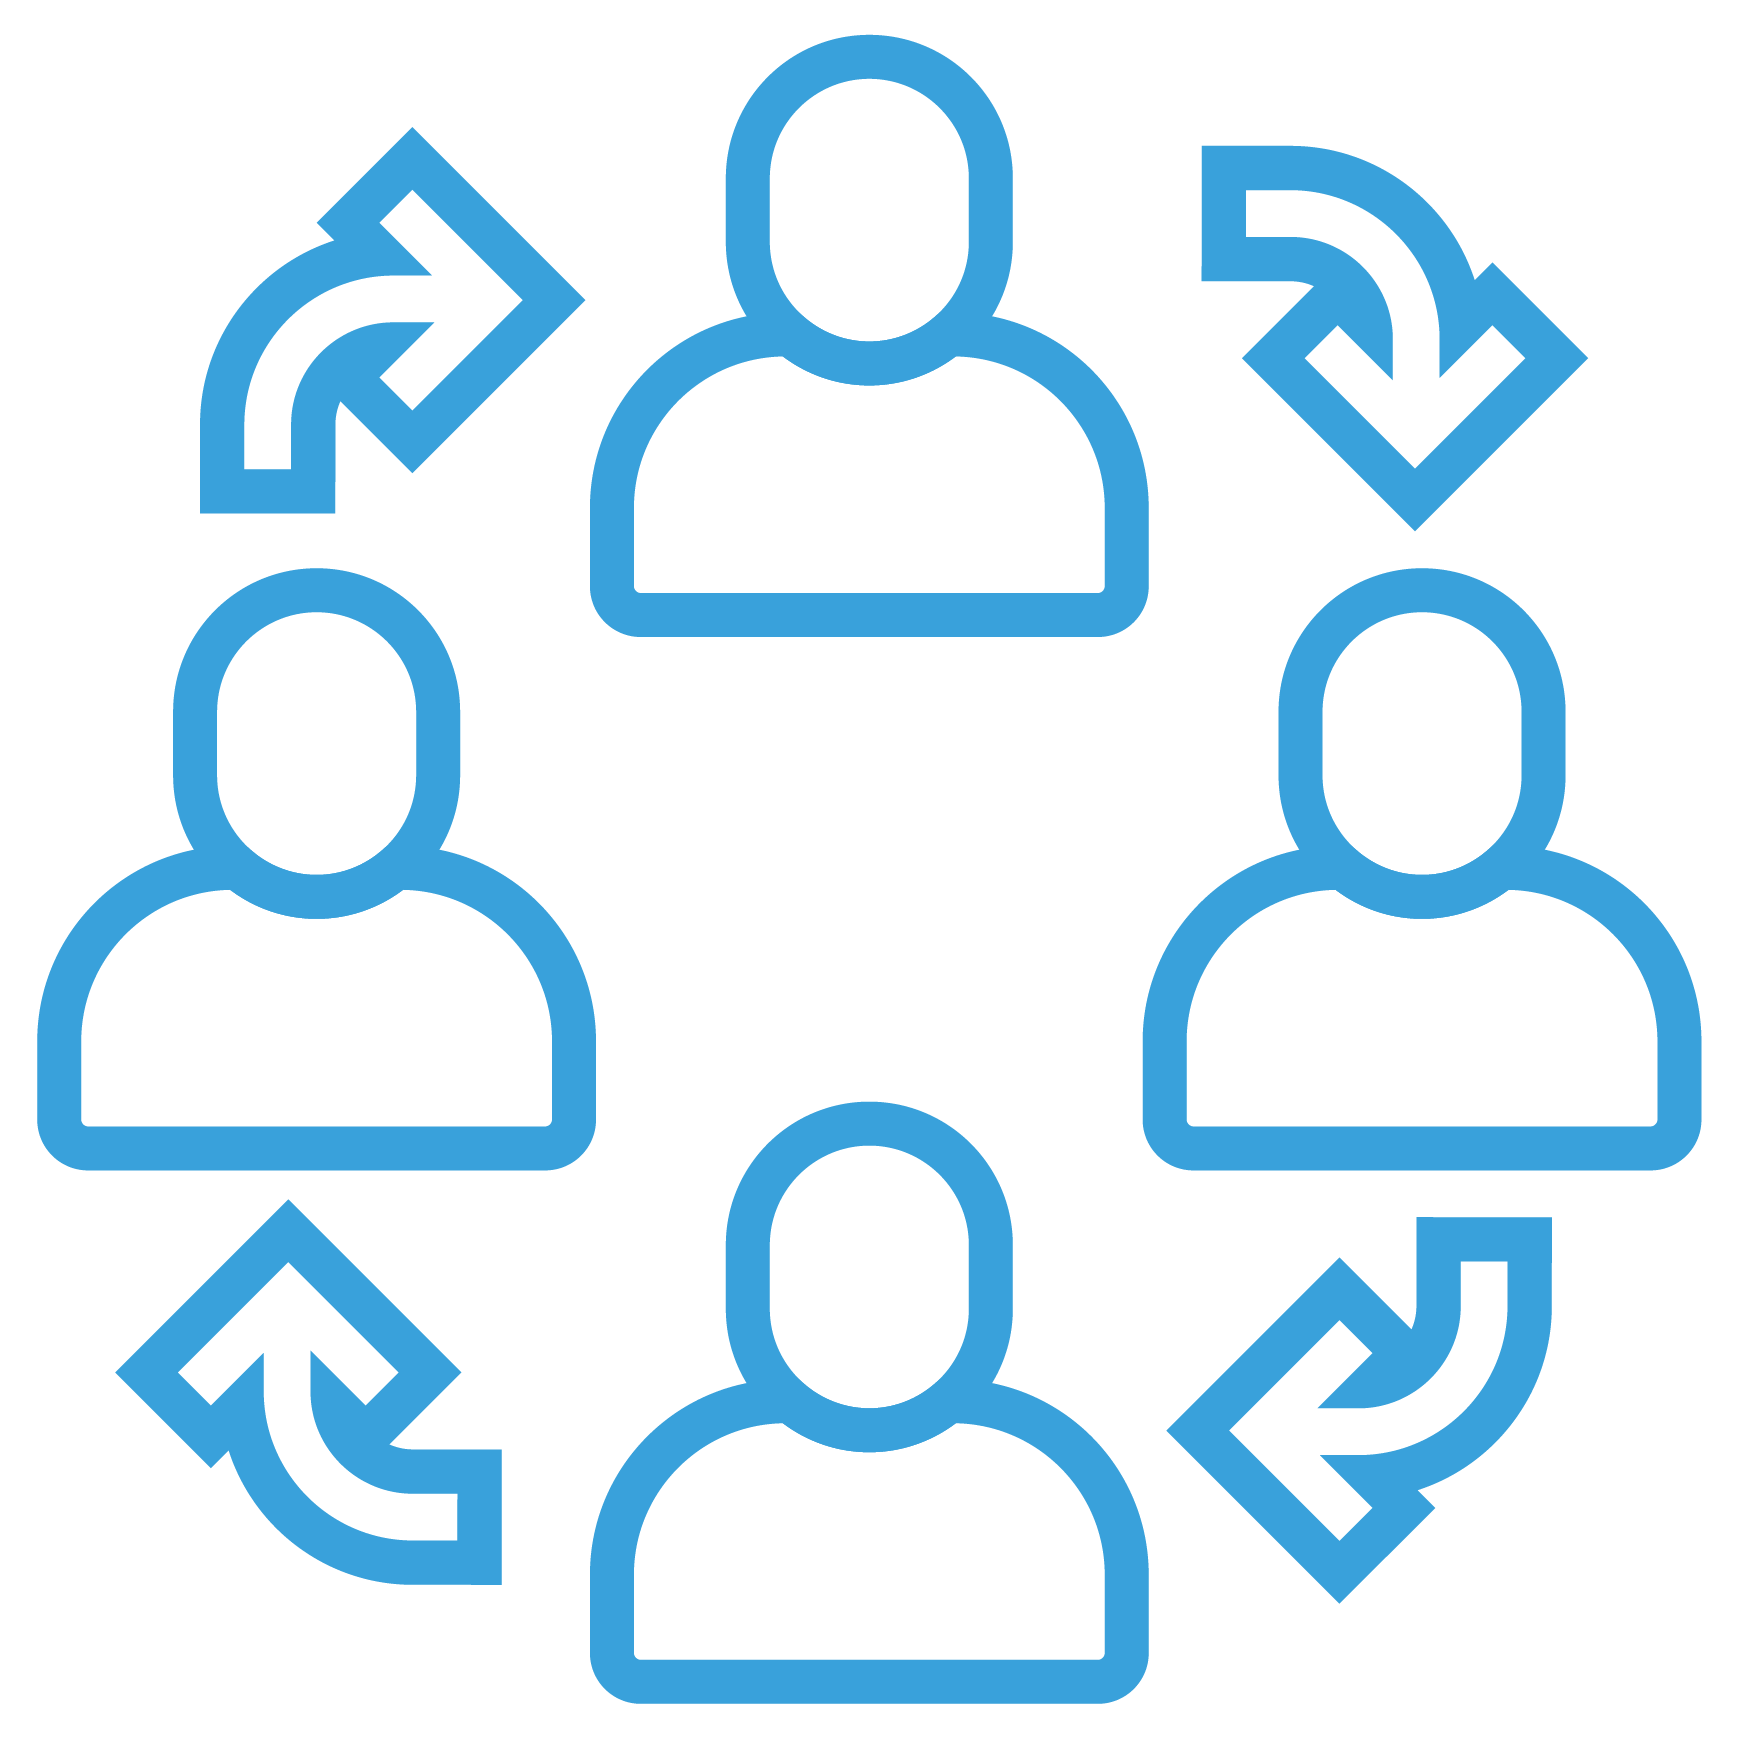 07_Networking_Icon-01-01